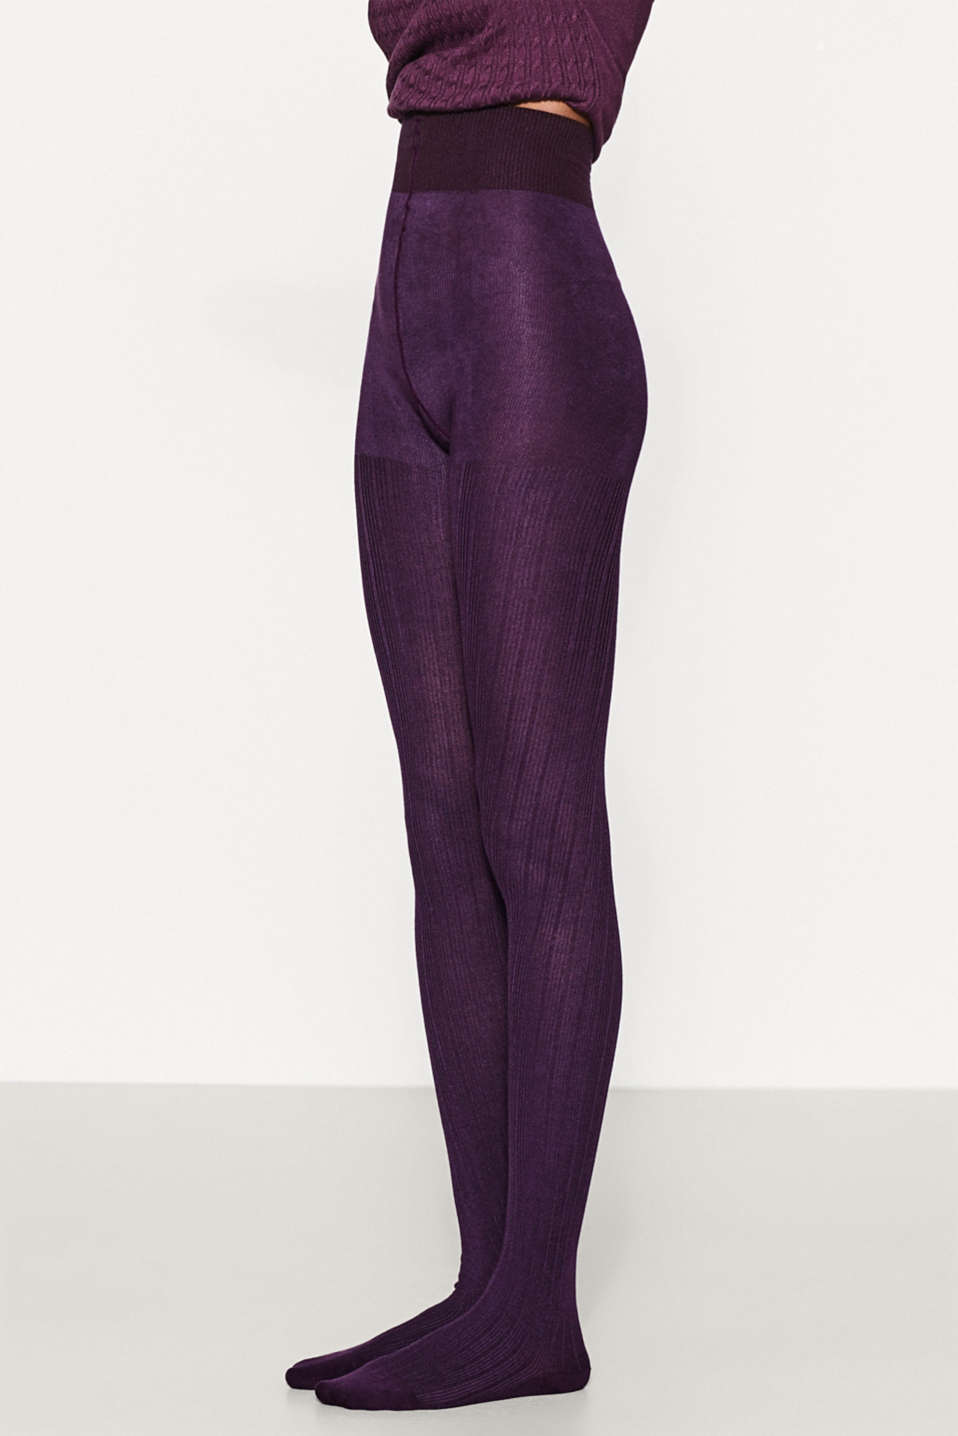 These finely ribbed tights will complete your feminine autumn look and go perfectly with dresses and skirts!